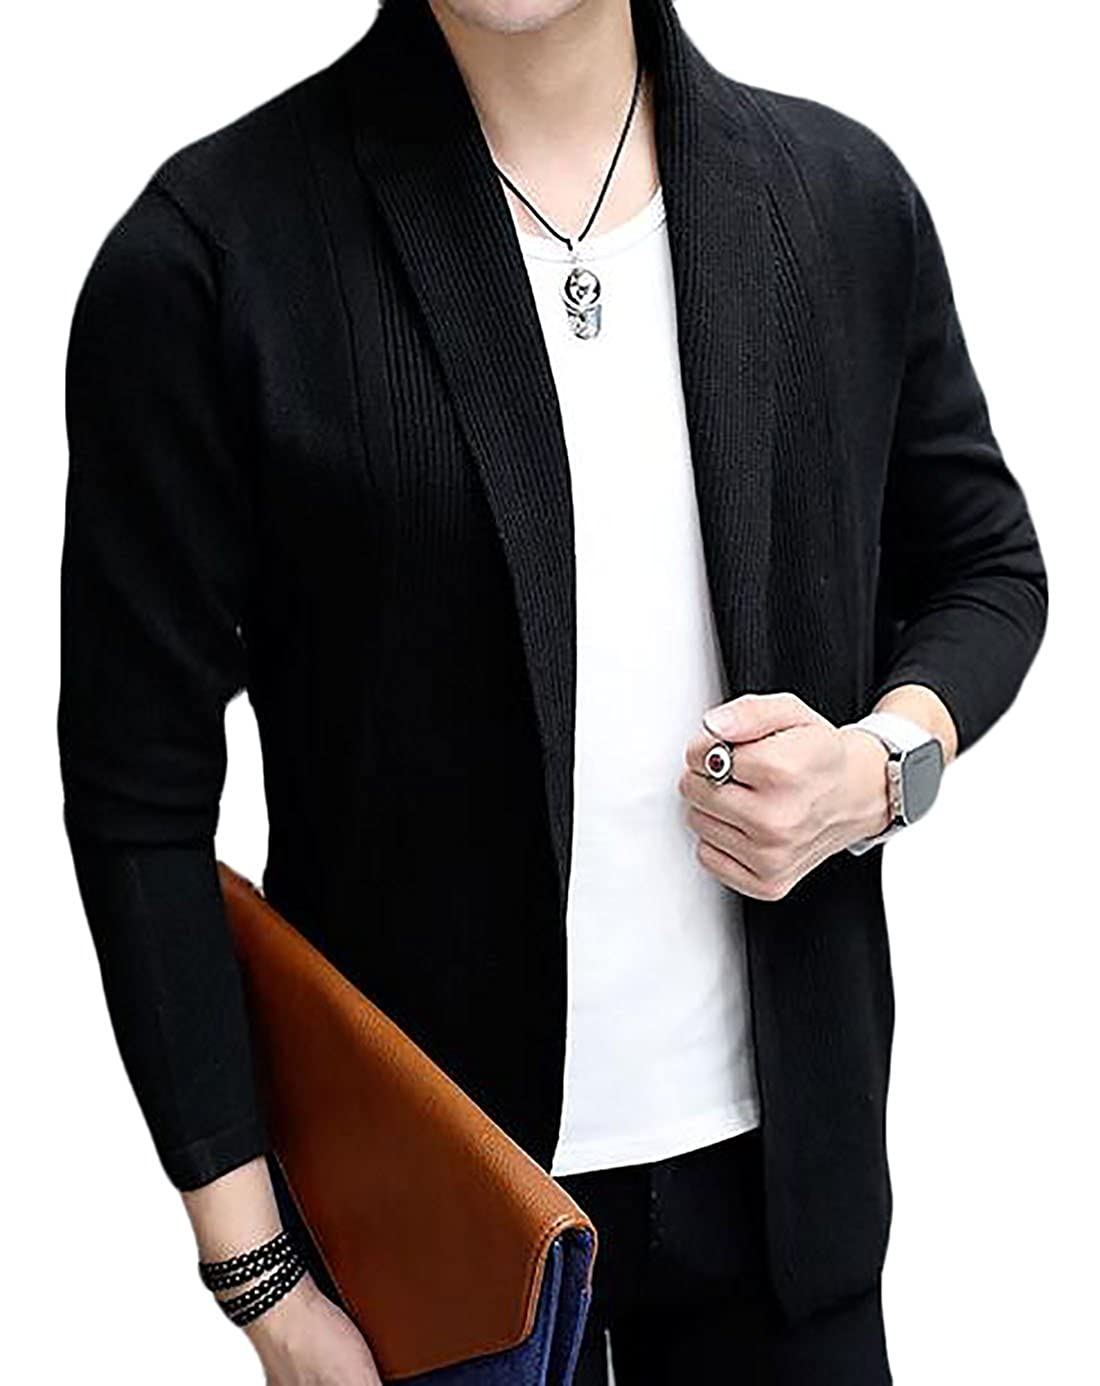 Fulok Men's Casual Basic Slim Knits Thin Drape Shawls Cardigan Sweater